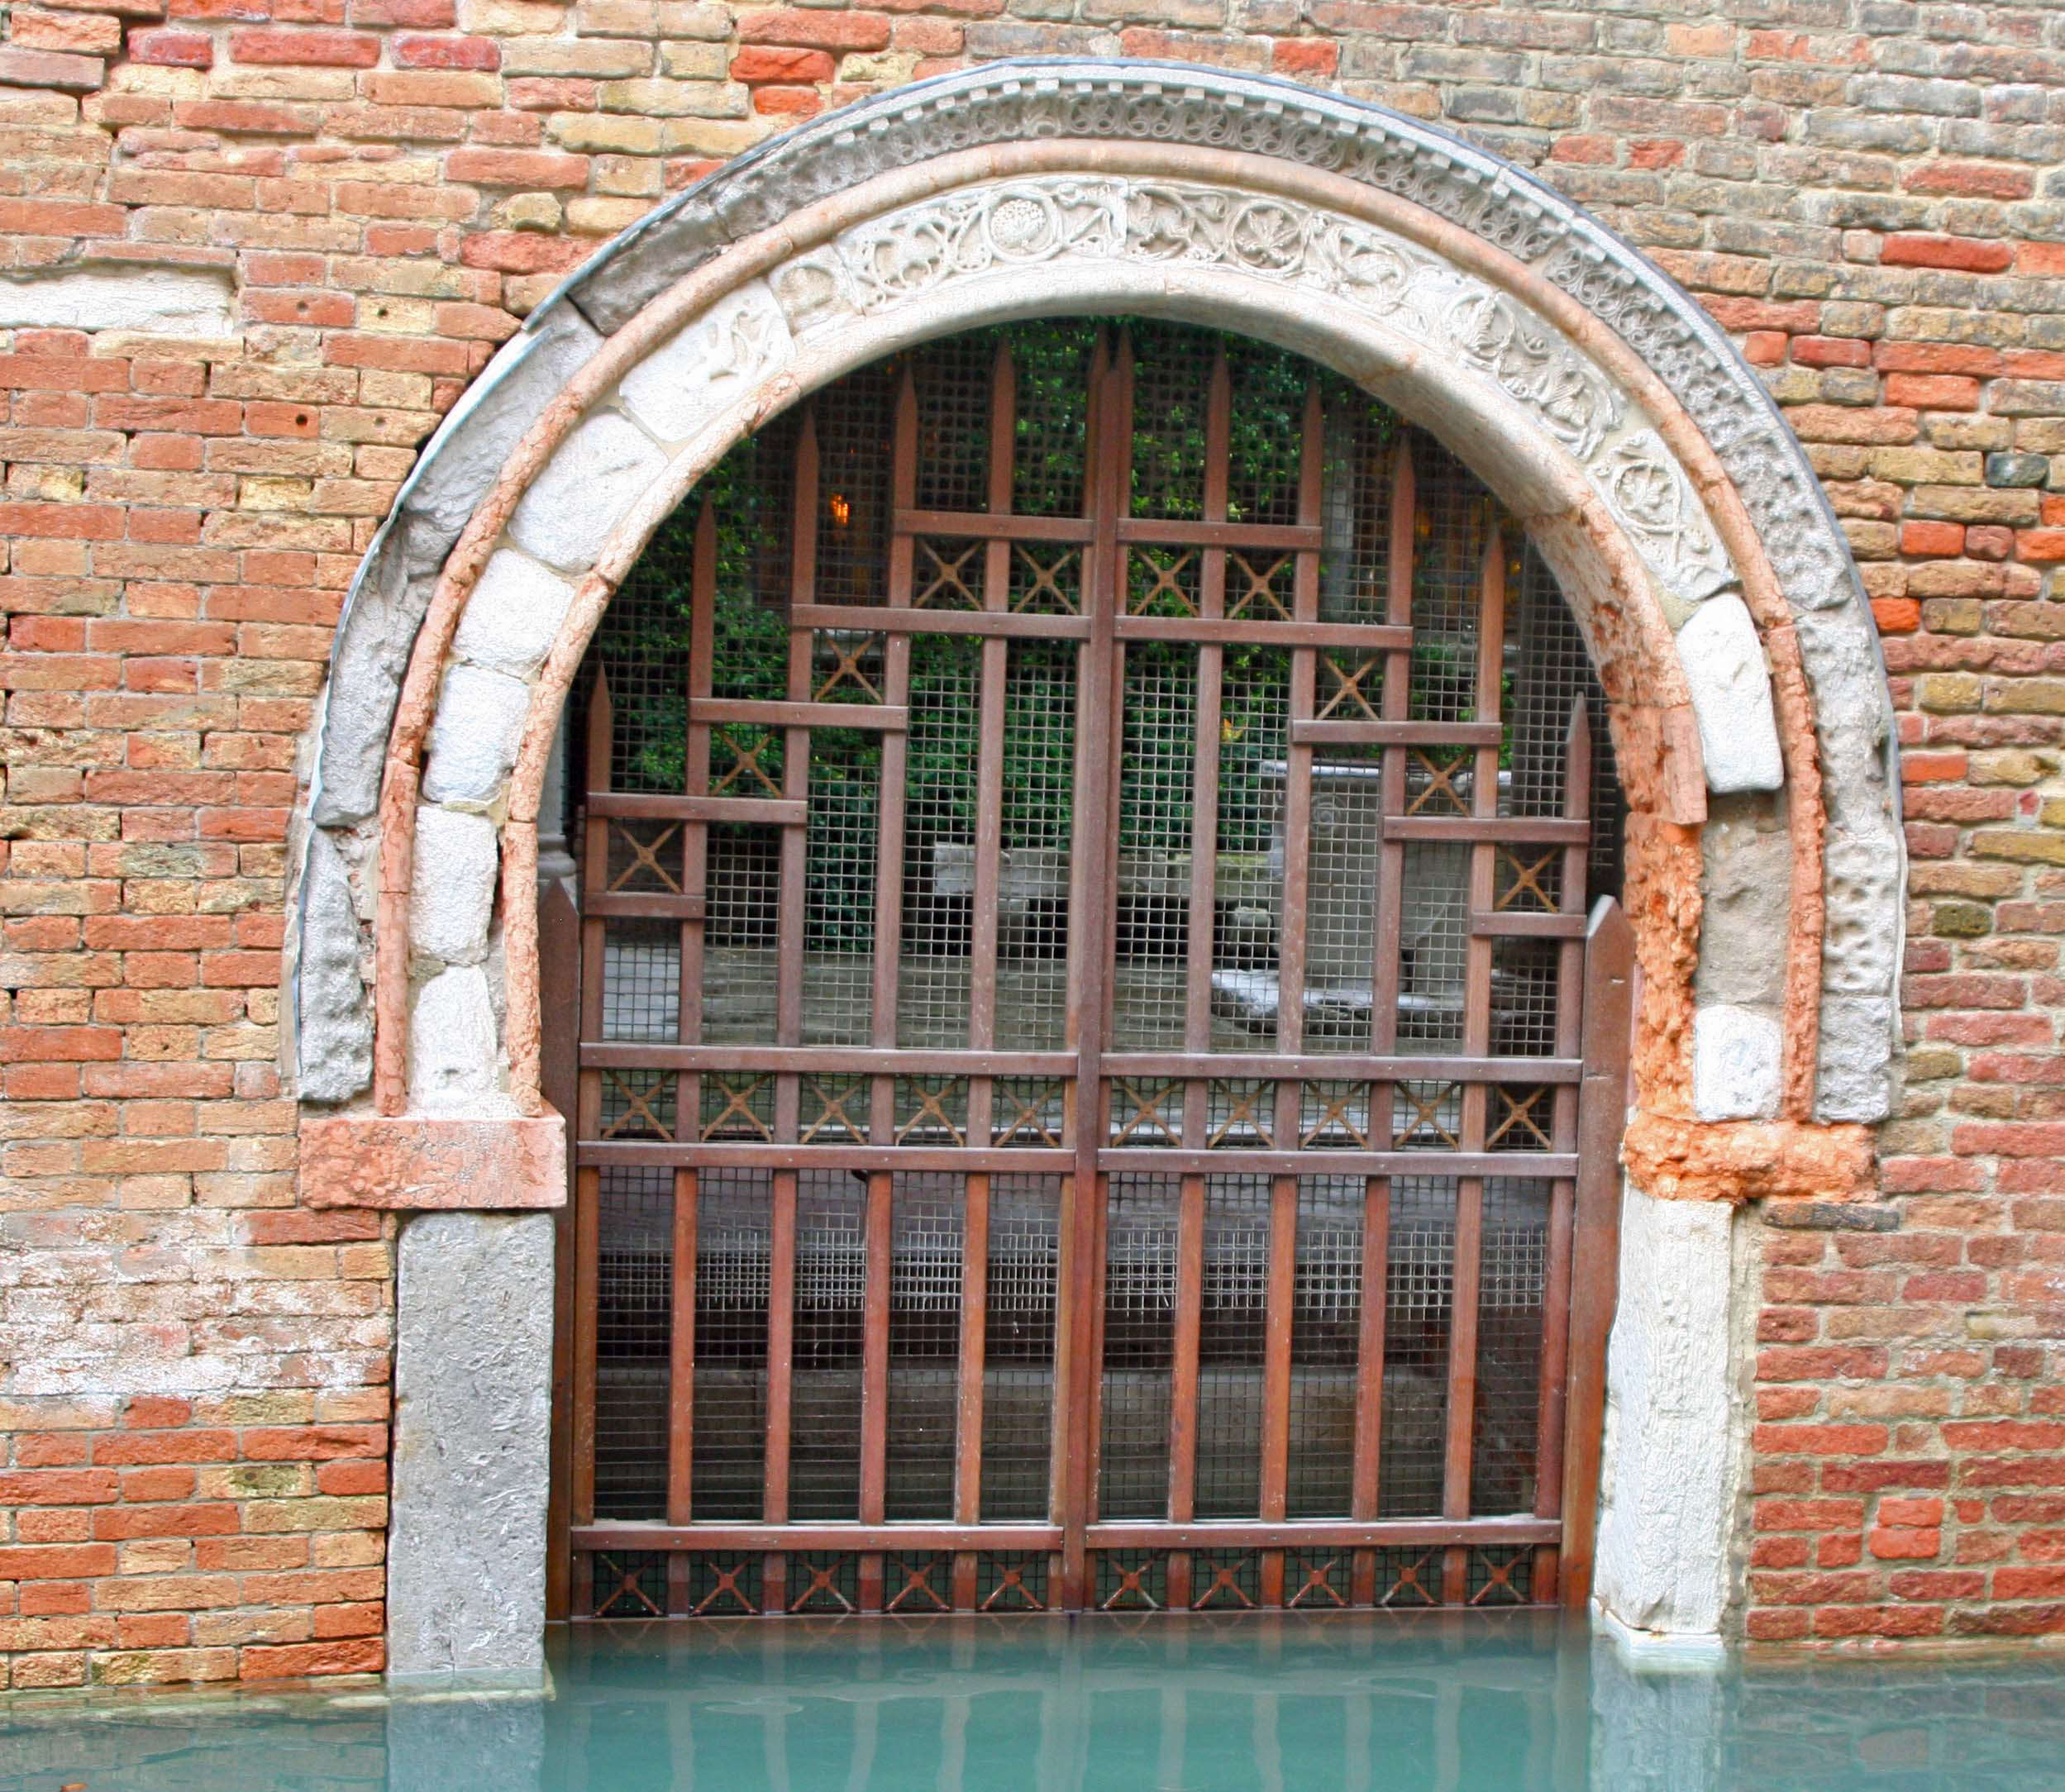 Peggy captured this interesting entrance way. I assume it would have been taller in the early years before sinking and global warming.